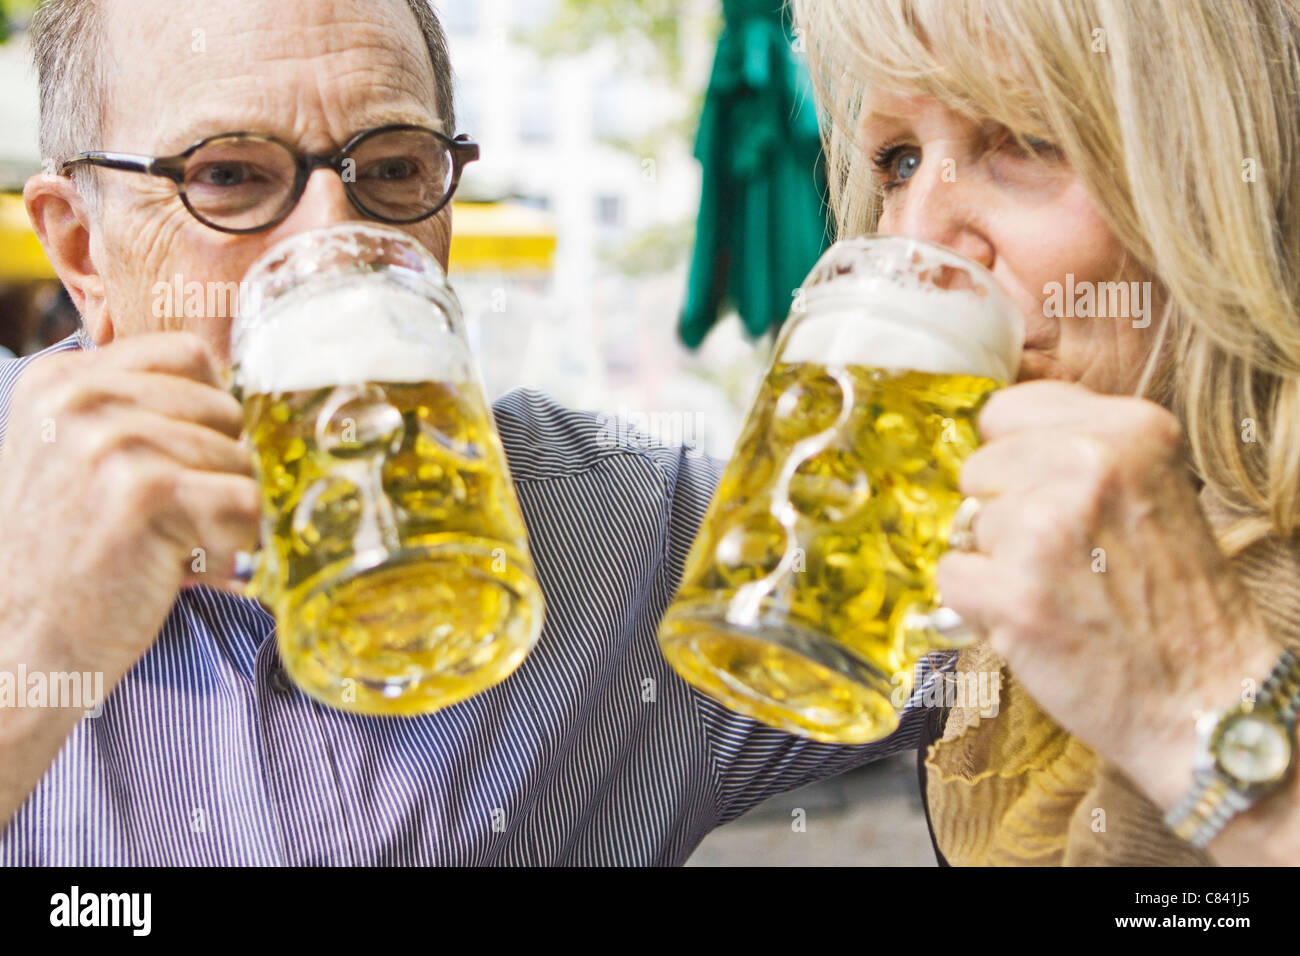 Older couple drinking beer together - Stock Image